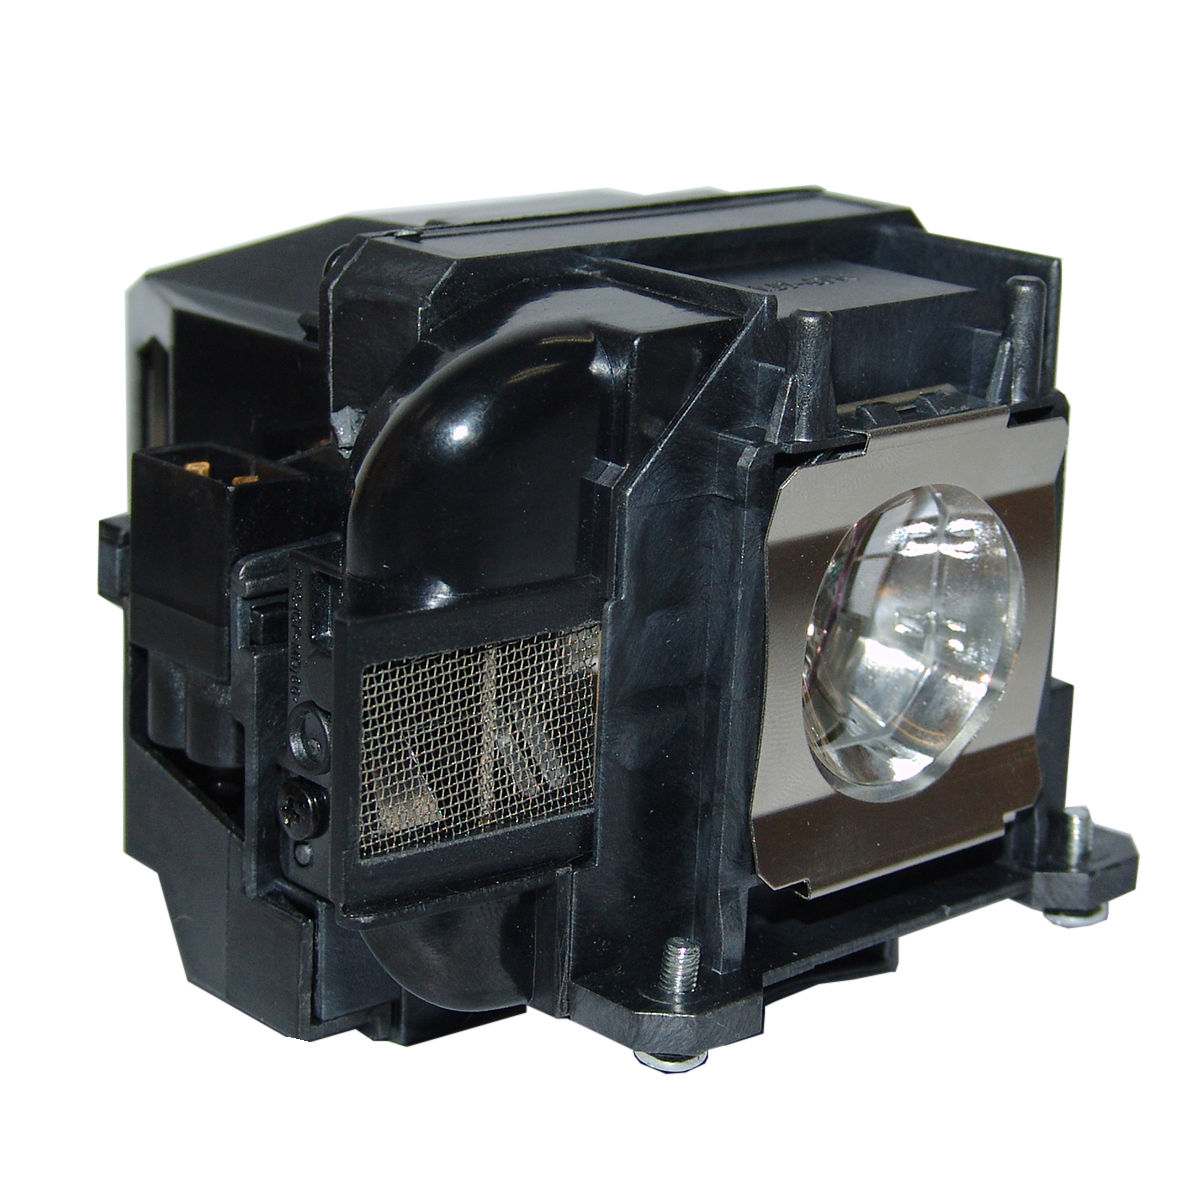 Projector Lamp Bulb ELPLP88 V13H010L88 for Epson EB-S31 PowerLite S27 X27 W29 97H 98H 99WH 955WH 965H VS345 VS240 With Housing vale 3 teachers book